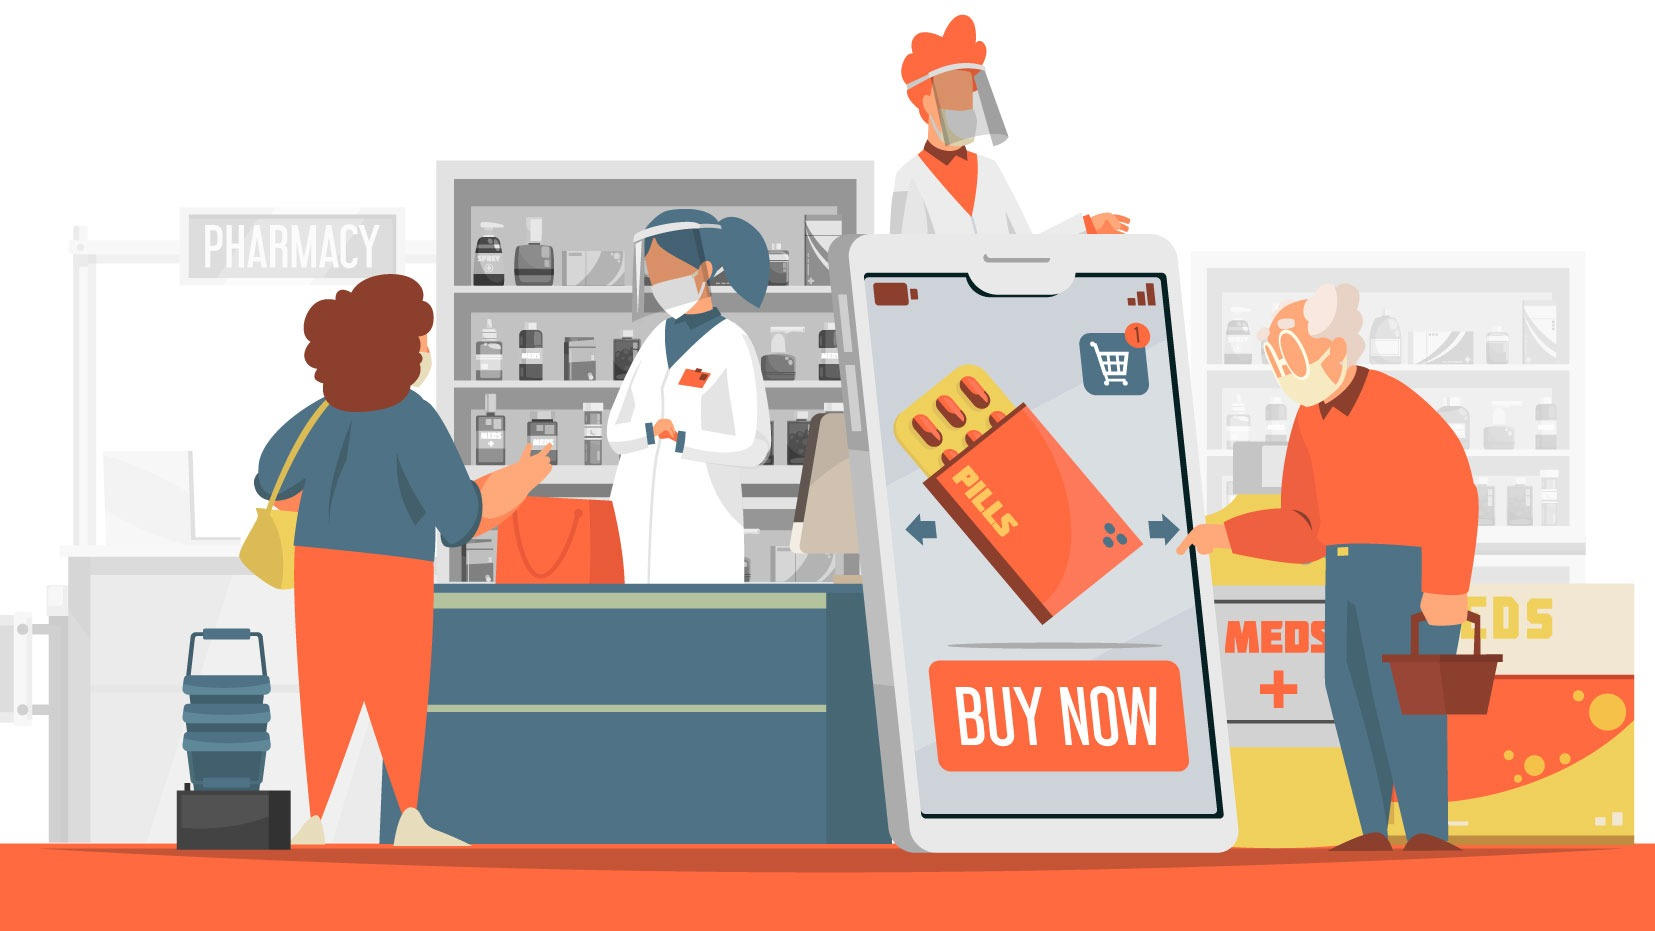 The Pharmacy Fit for Digital: Walgreens Boots Alliance and Adobe Experience Manager